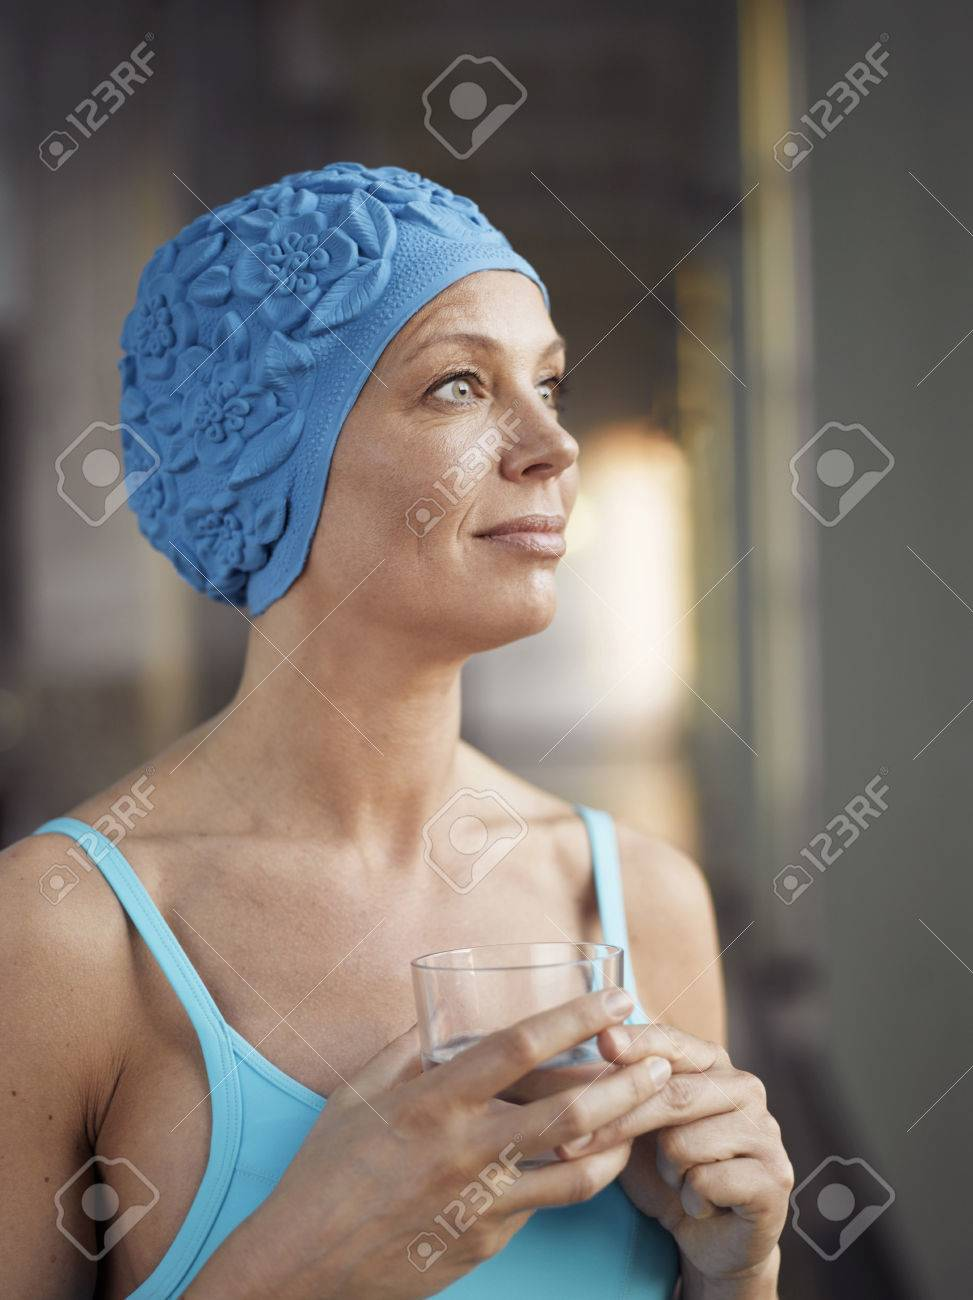 Mature woman wearing bathing suit, holding glass of water Stock Photo -  80207004